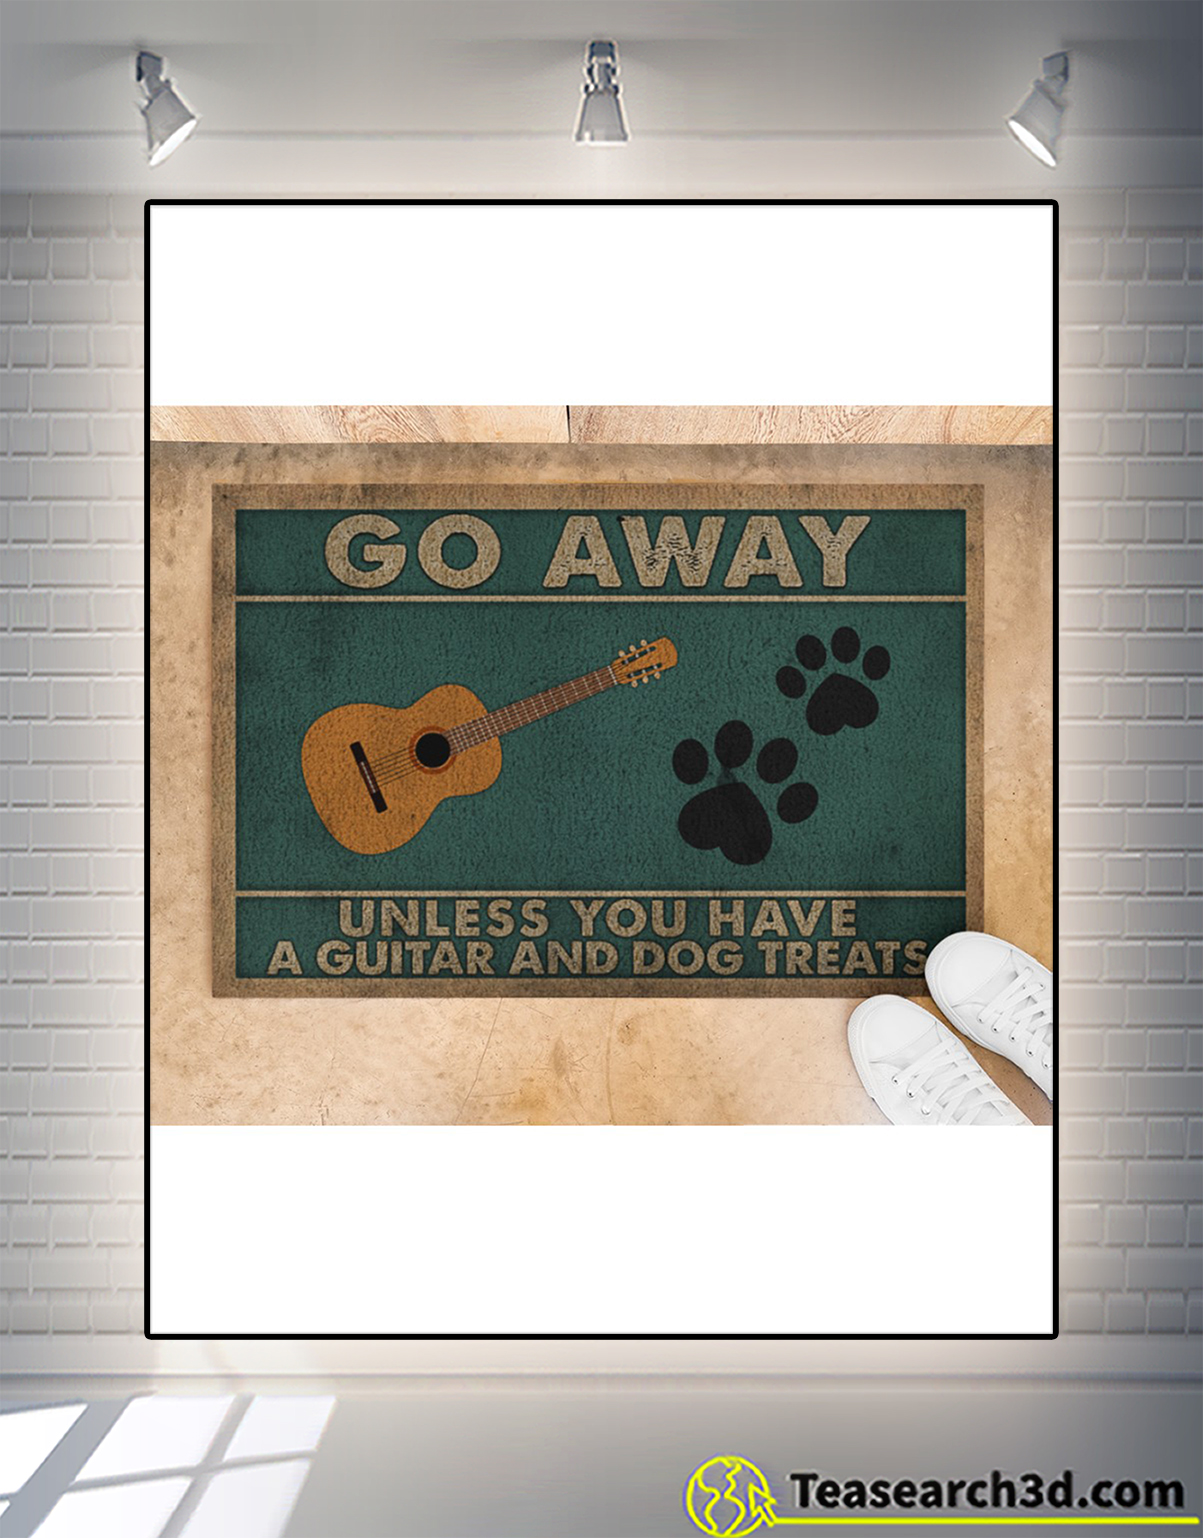 Go away unless you have a guitar and dog treats doormat 1